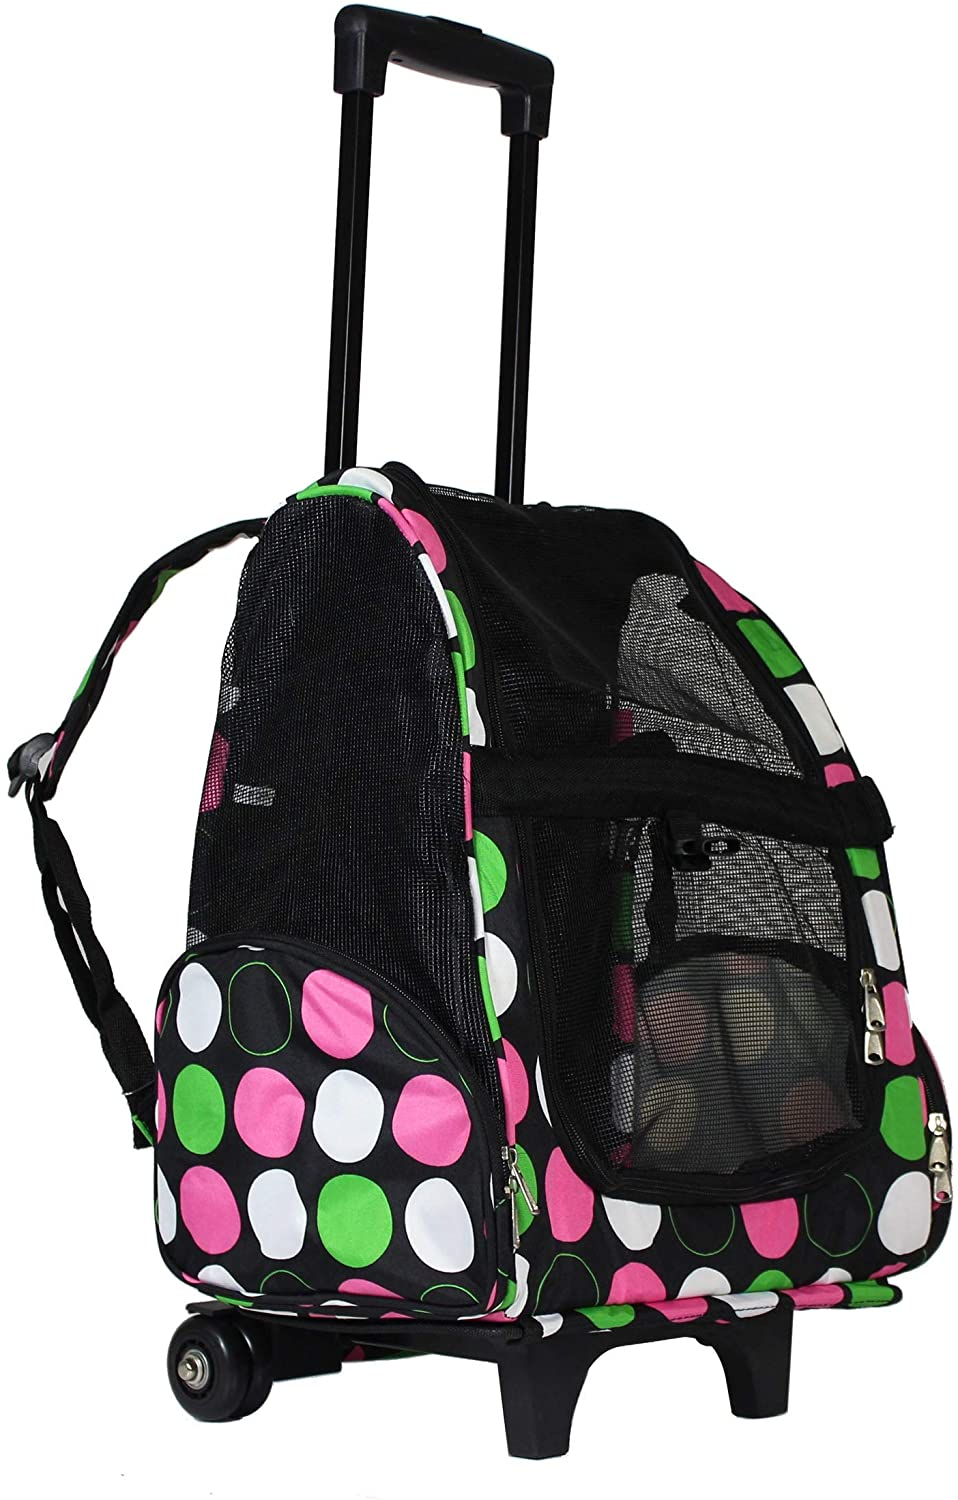 Polka Dot 20 inch Rolling Small Pet Carrier Backpack Carry Convertible New Color White Polyester Portable